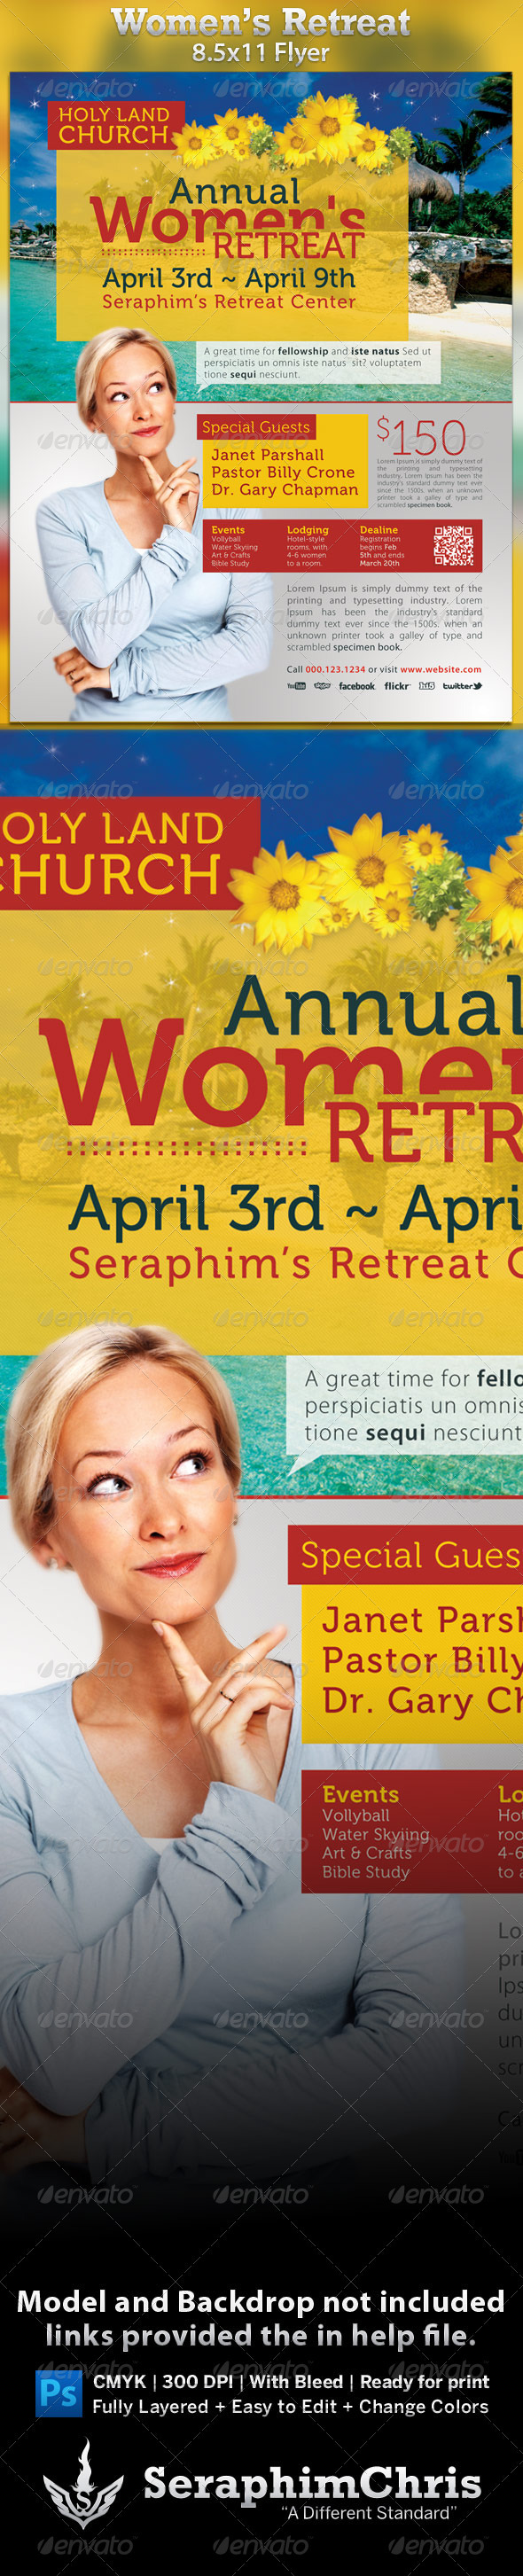 Church Women's Retreat Flyer Template - Church Flyers